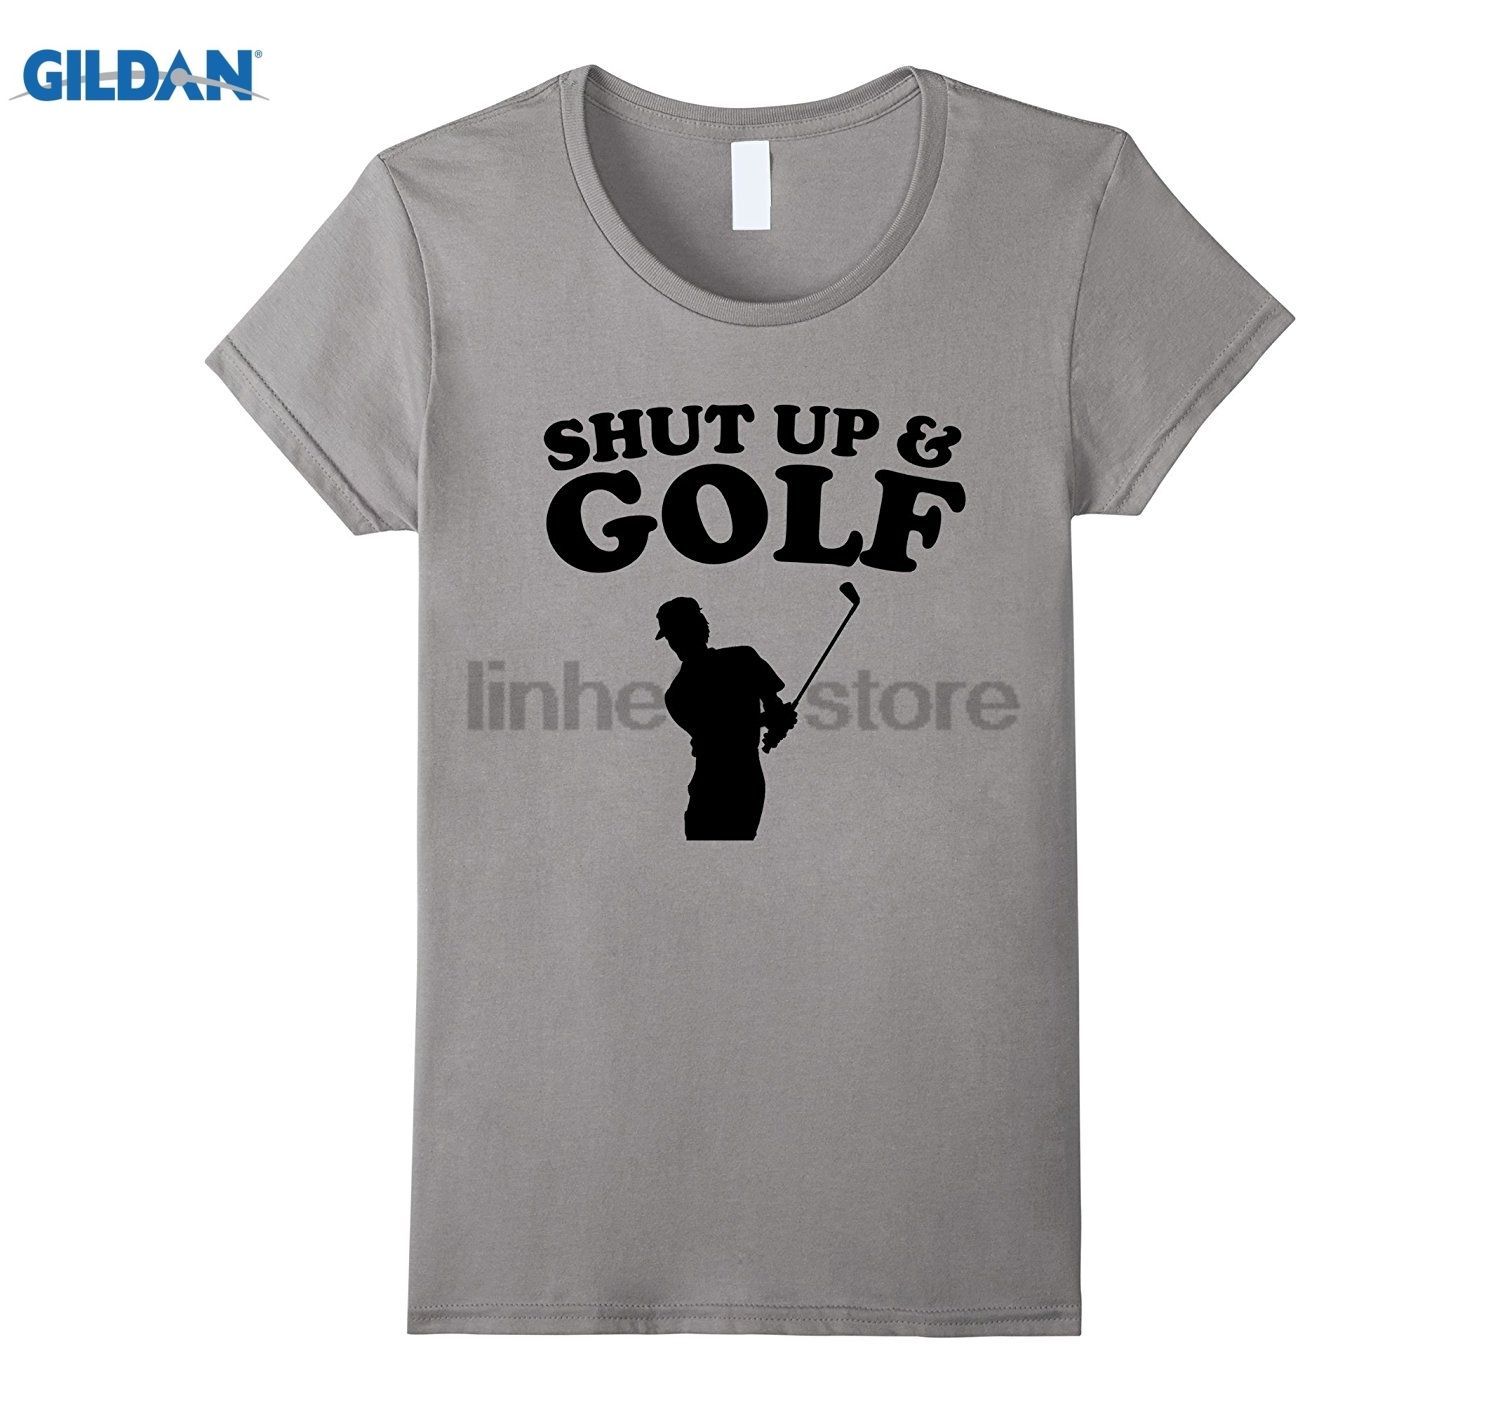 GILDAN Shut Up And Funny Golfing T-Shirt sunglasses women T-shirt dress T-shirt ...